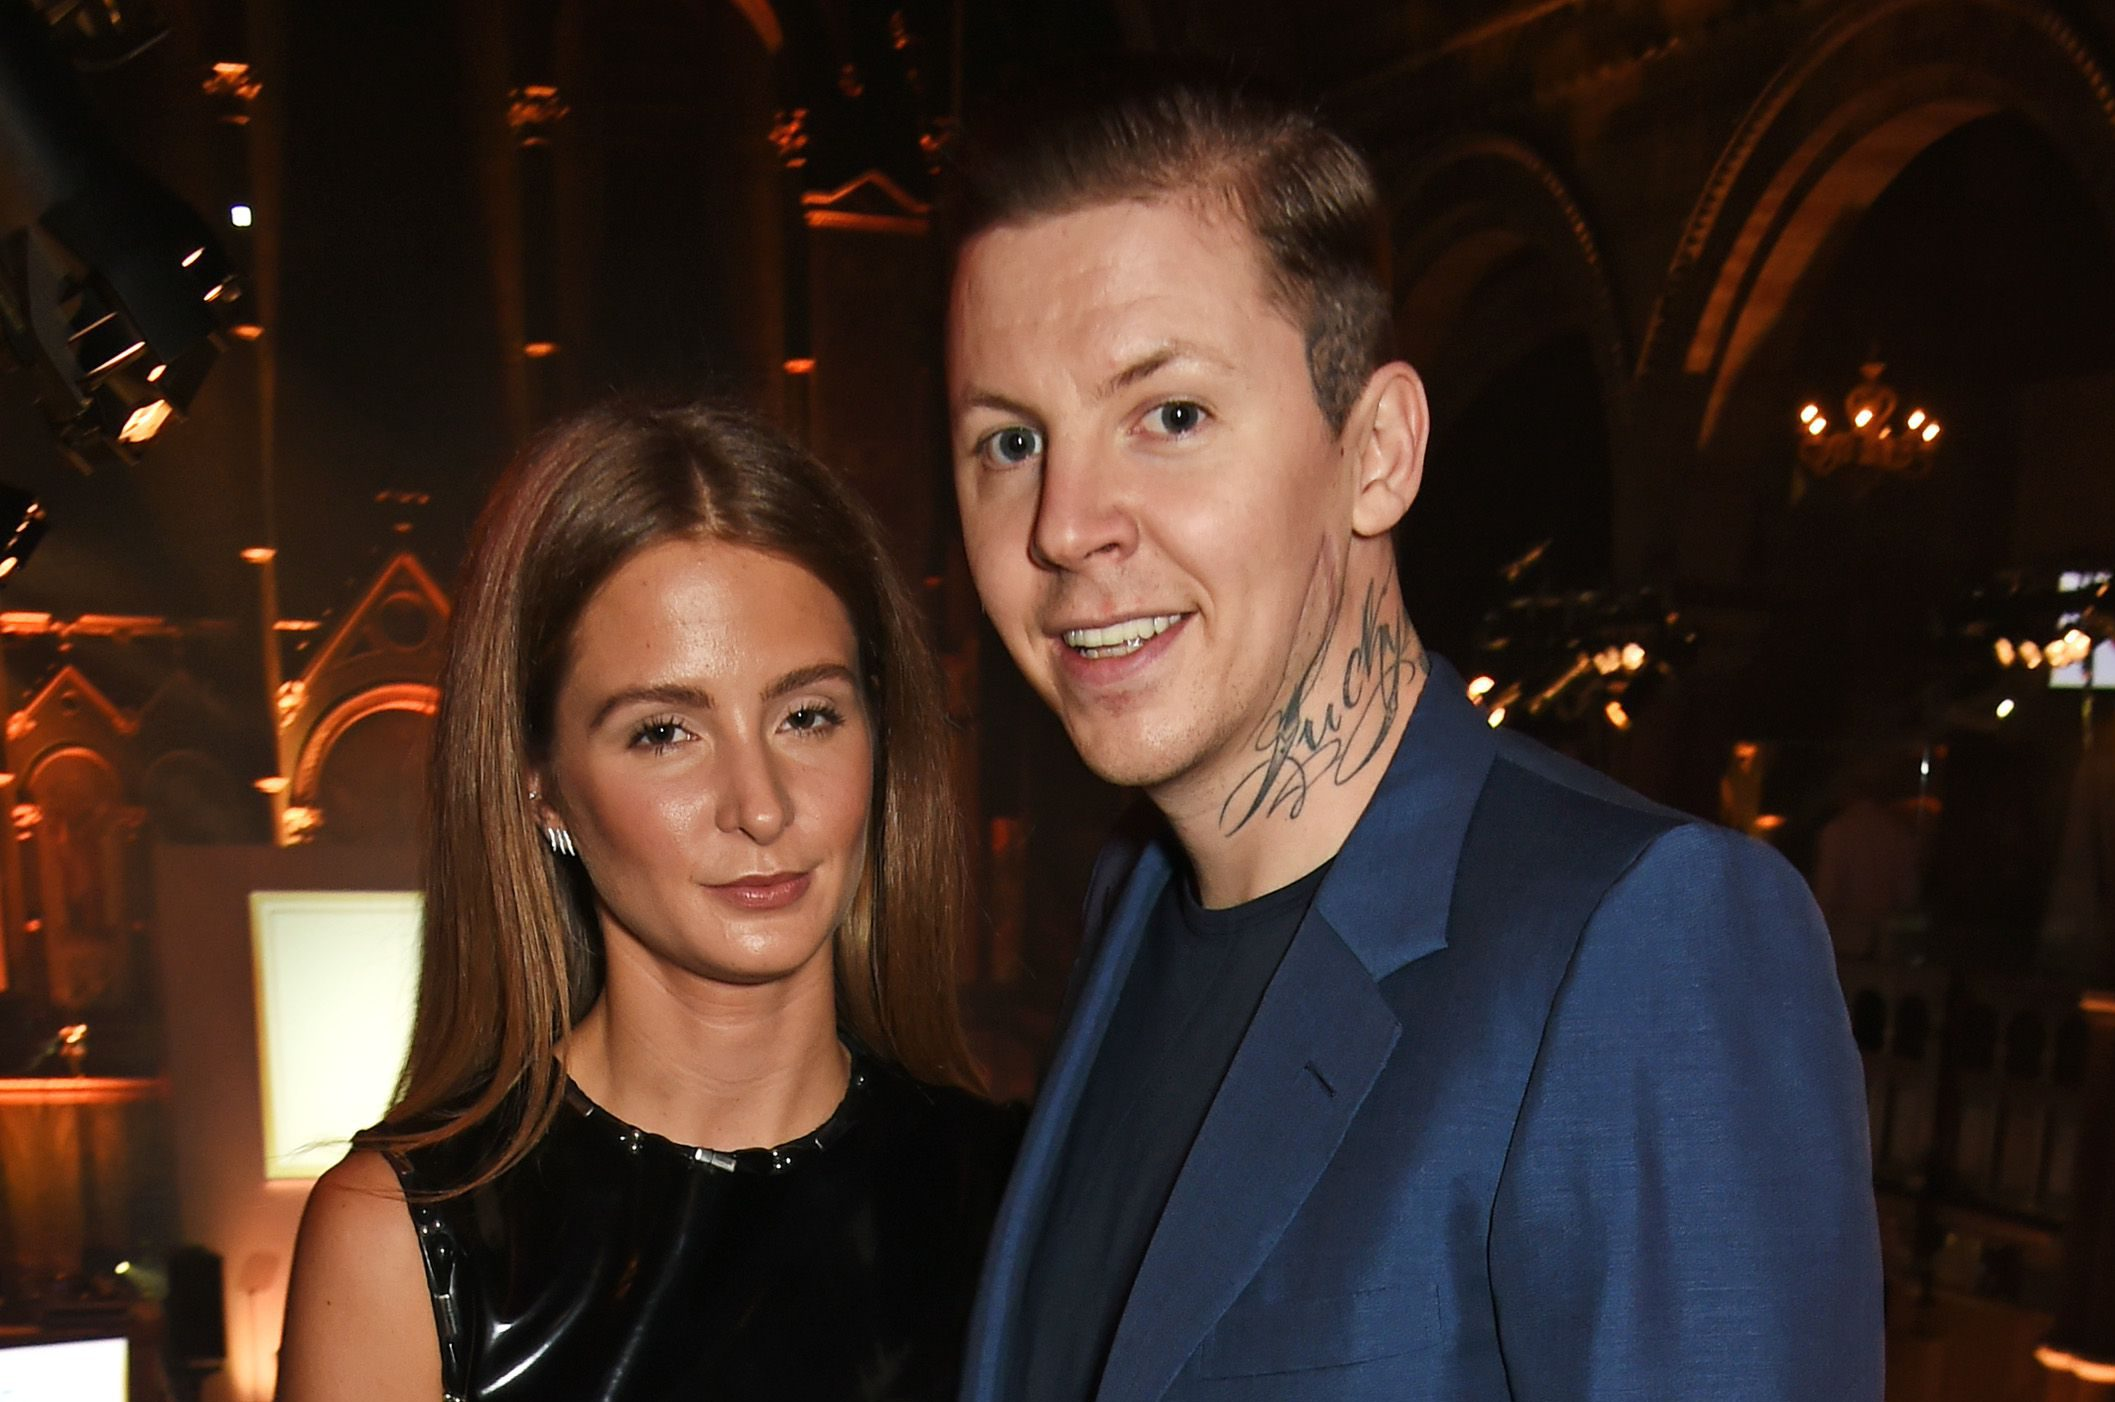 When did professor green and millie mackintosh start dating